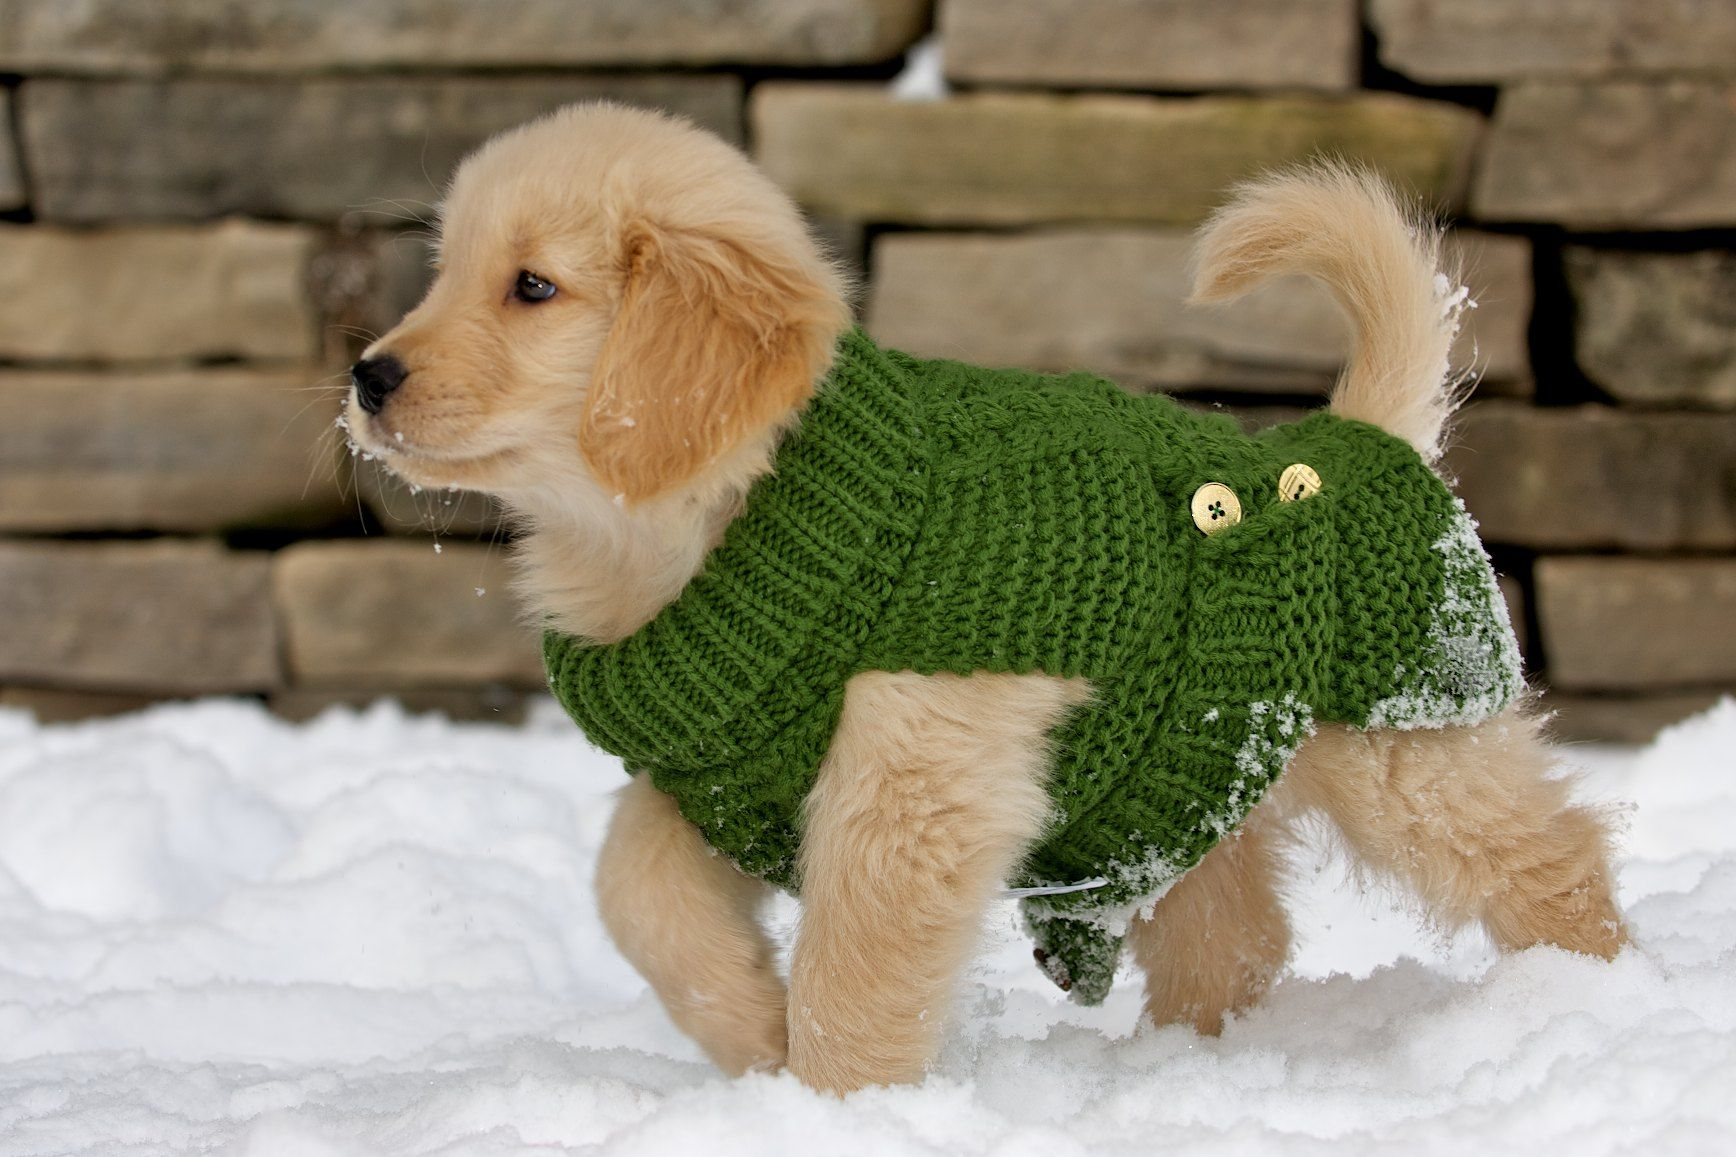 Puppy Strut Golden Retriever Snow Sweater Puppy Arcane I Love Dogs Cute Animals Beloved Dog